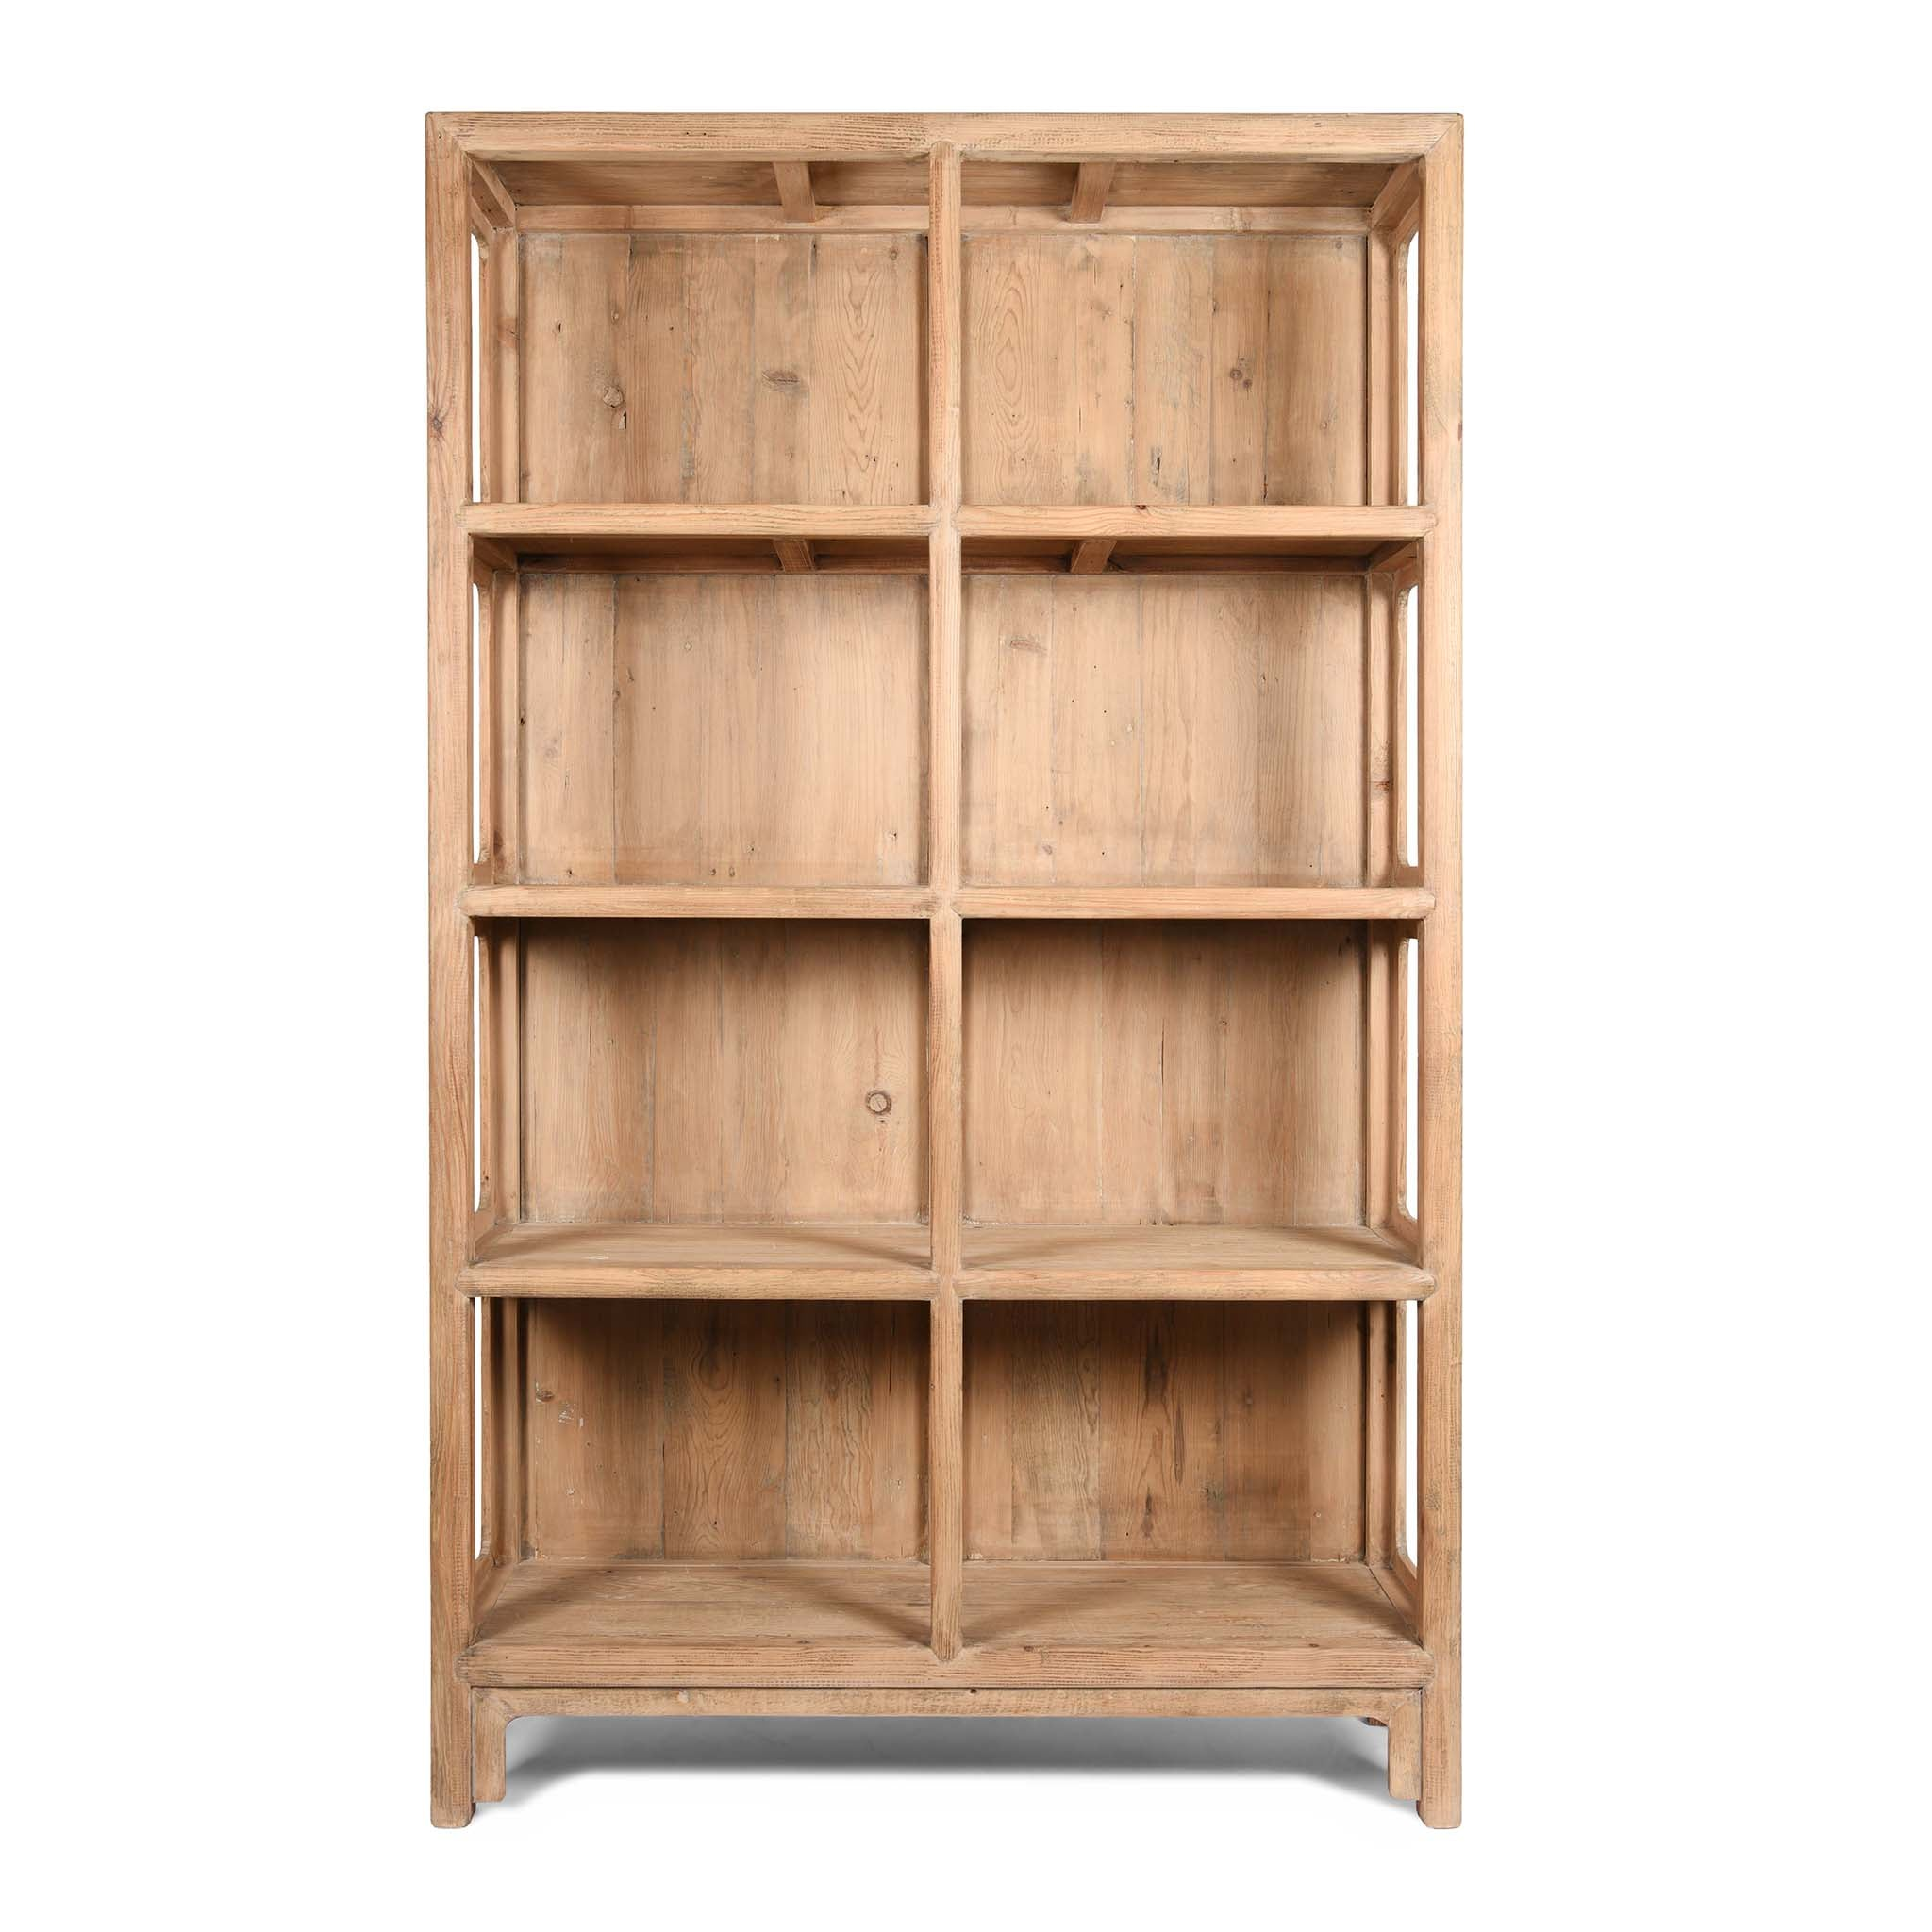 Bookshelf Made From Reclaimed Elm